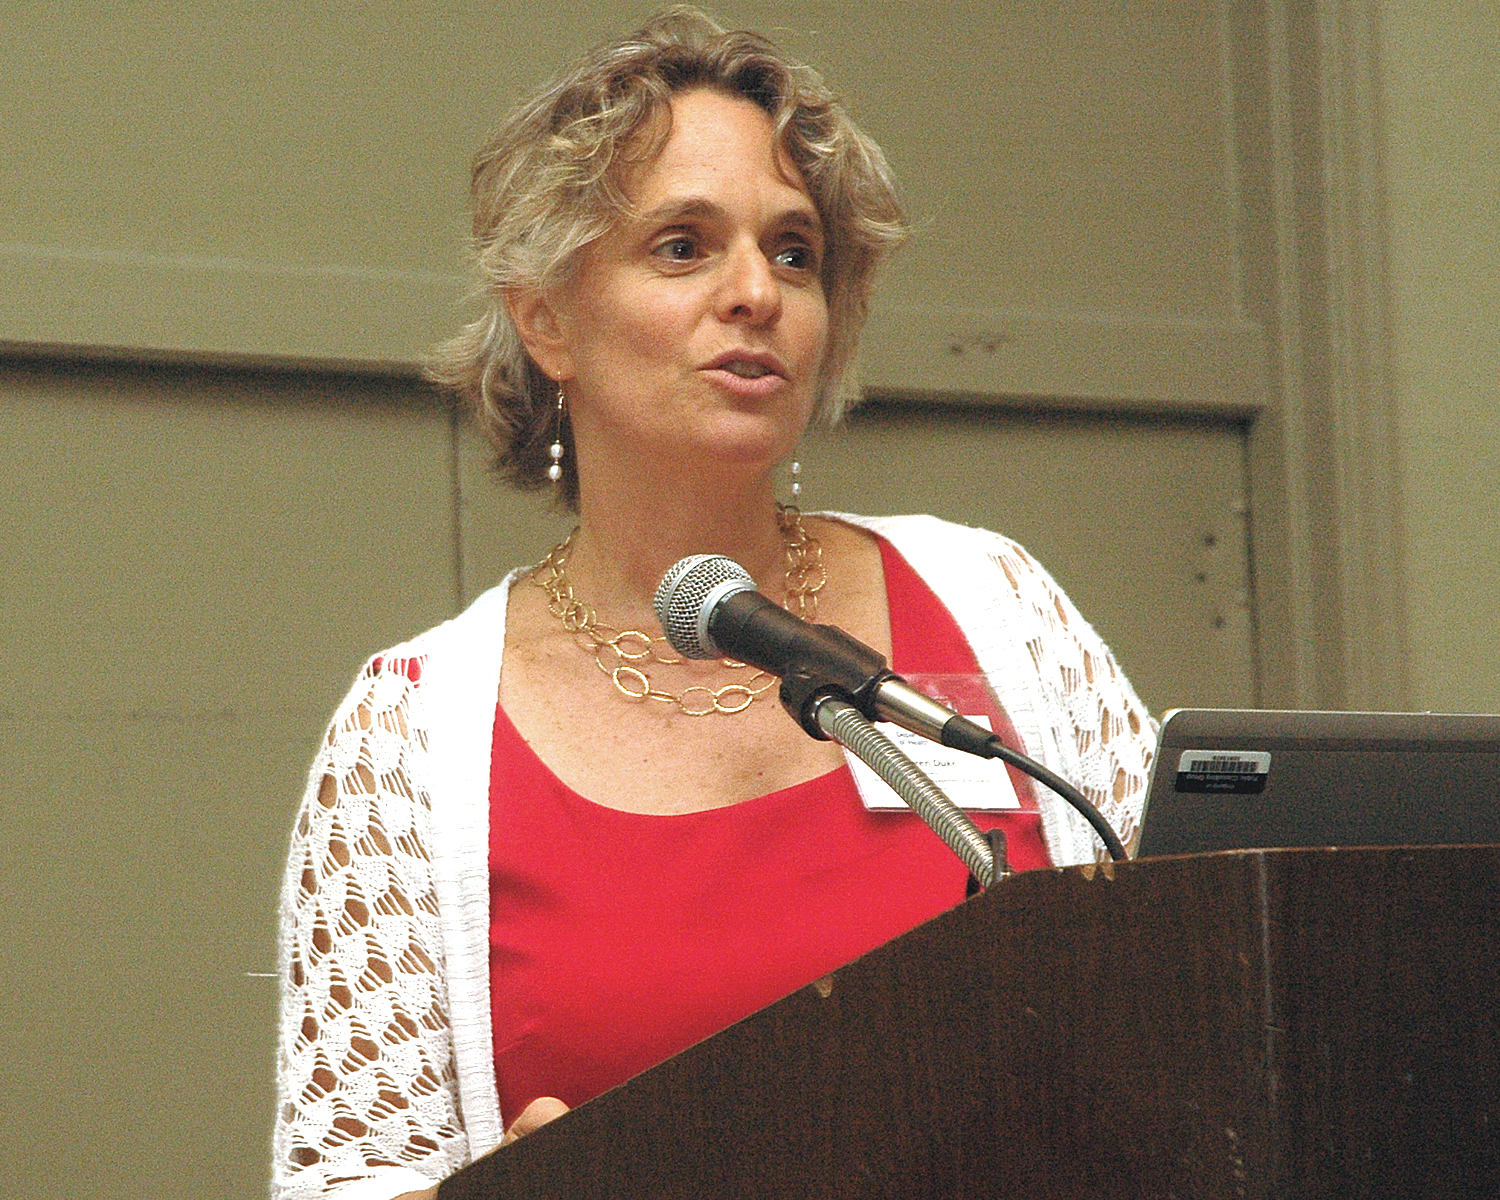 Sharen Duke during her presentation